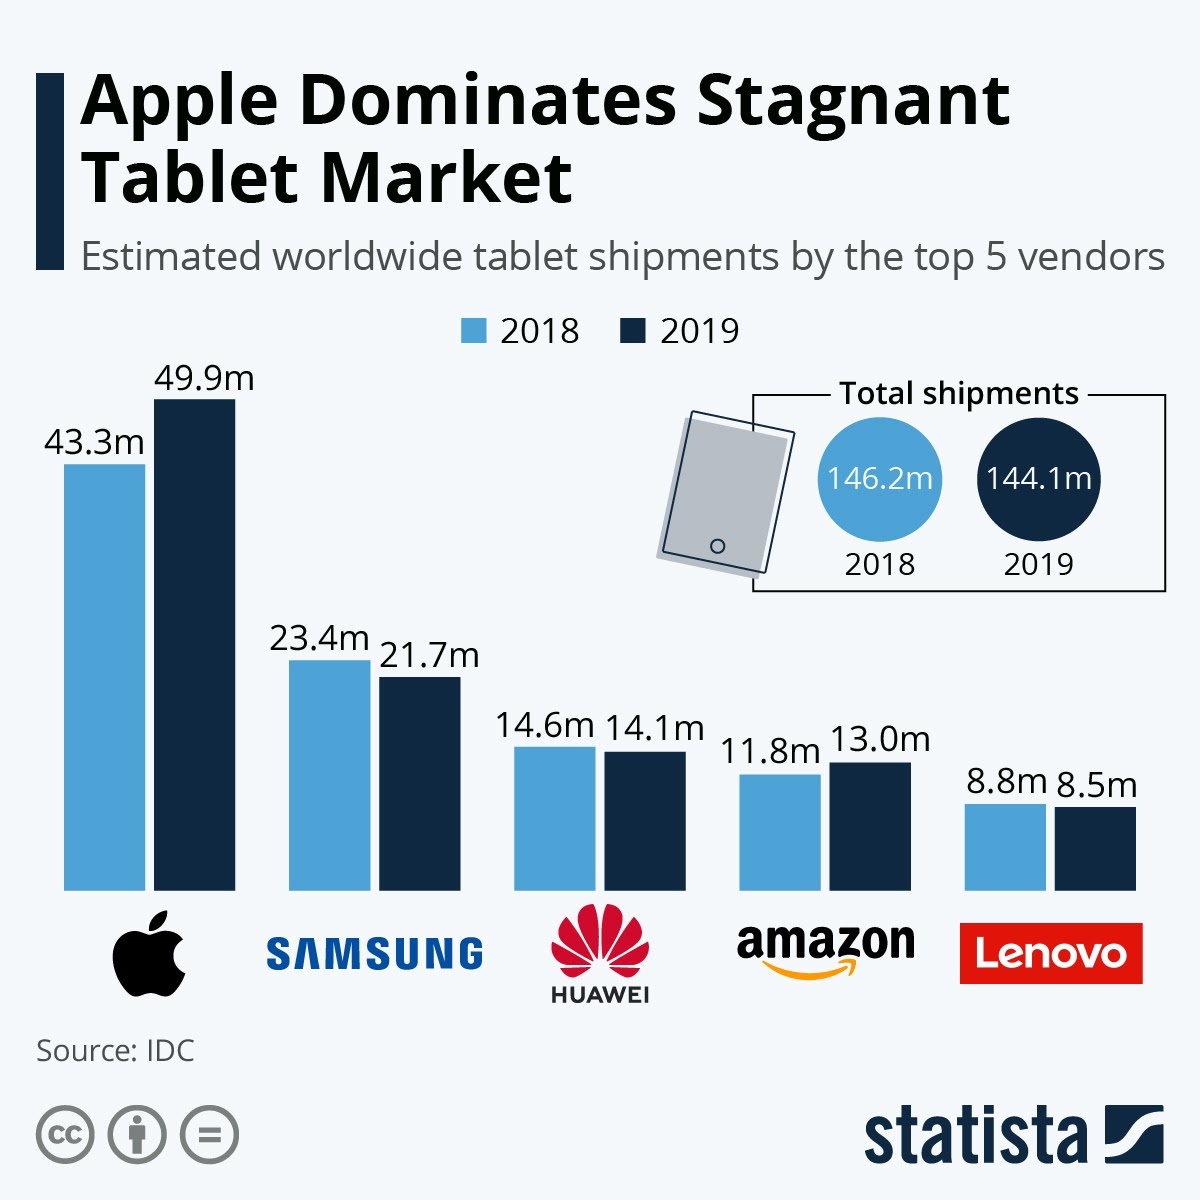 Apple Dominates Stagnant Tablet Market #infographic